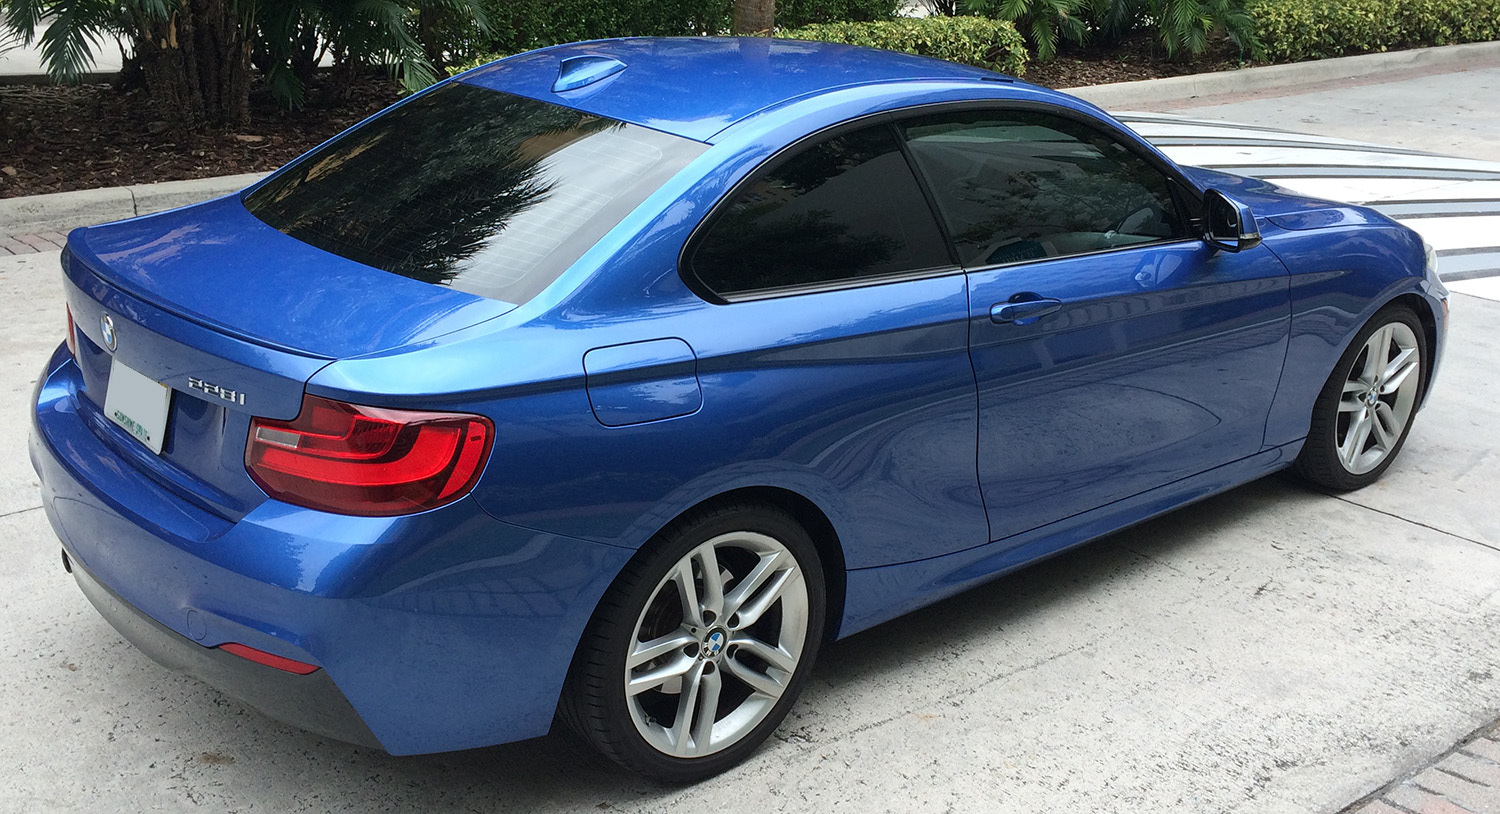 Bmw 228i Lease Assumption Marketplace Leasehackr Forum